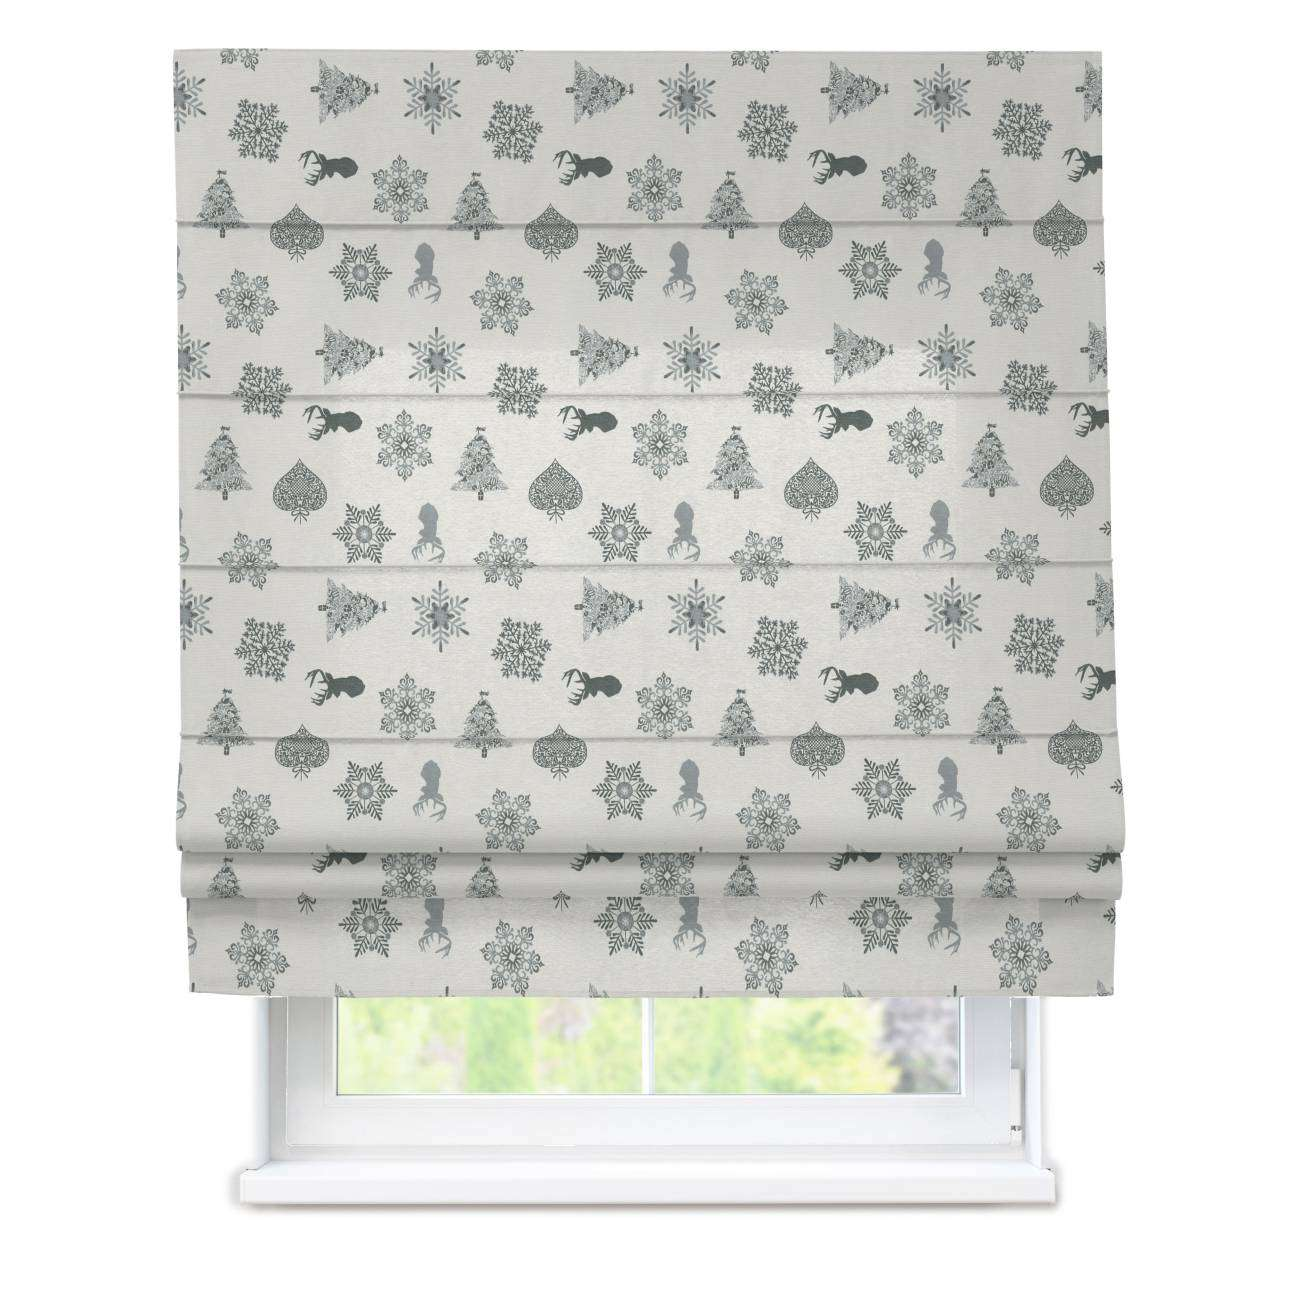 Padva roman blind  80 x 170 cm (31.5 x 67 inch) in collection Christmas, fabric: 630-24